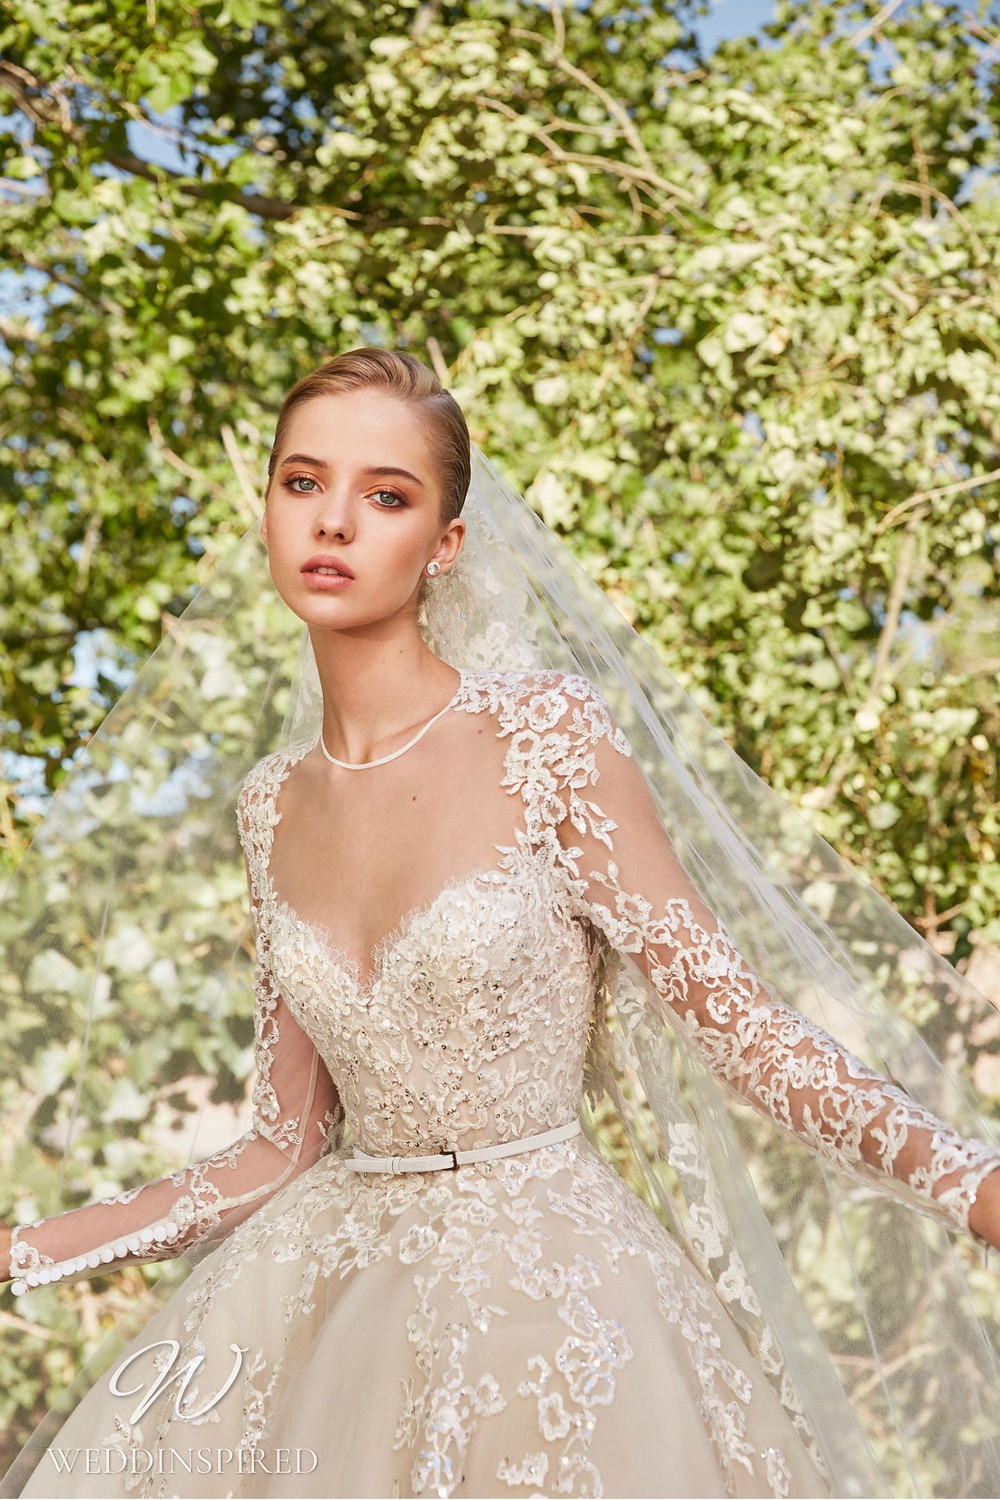 An Elie Saab Spring 2021 ivory lace princess ball gown wedding dress with long illusion sleeves